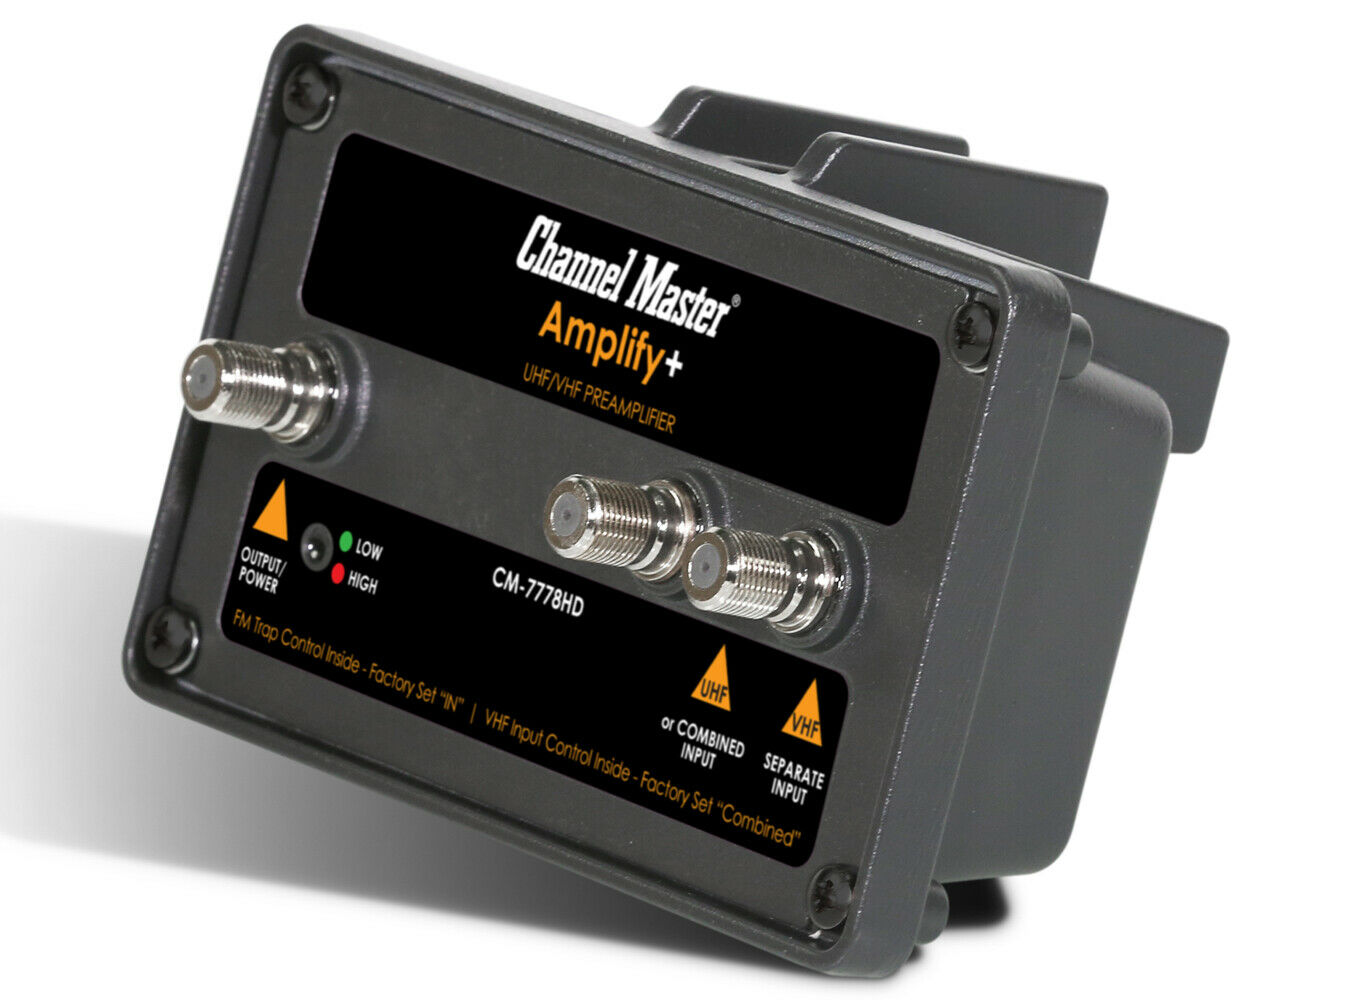 Channel Master Amplify+ Adjustable Gain Preamplifier Professional Grade 7778HD. Available Now for 99.00